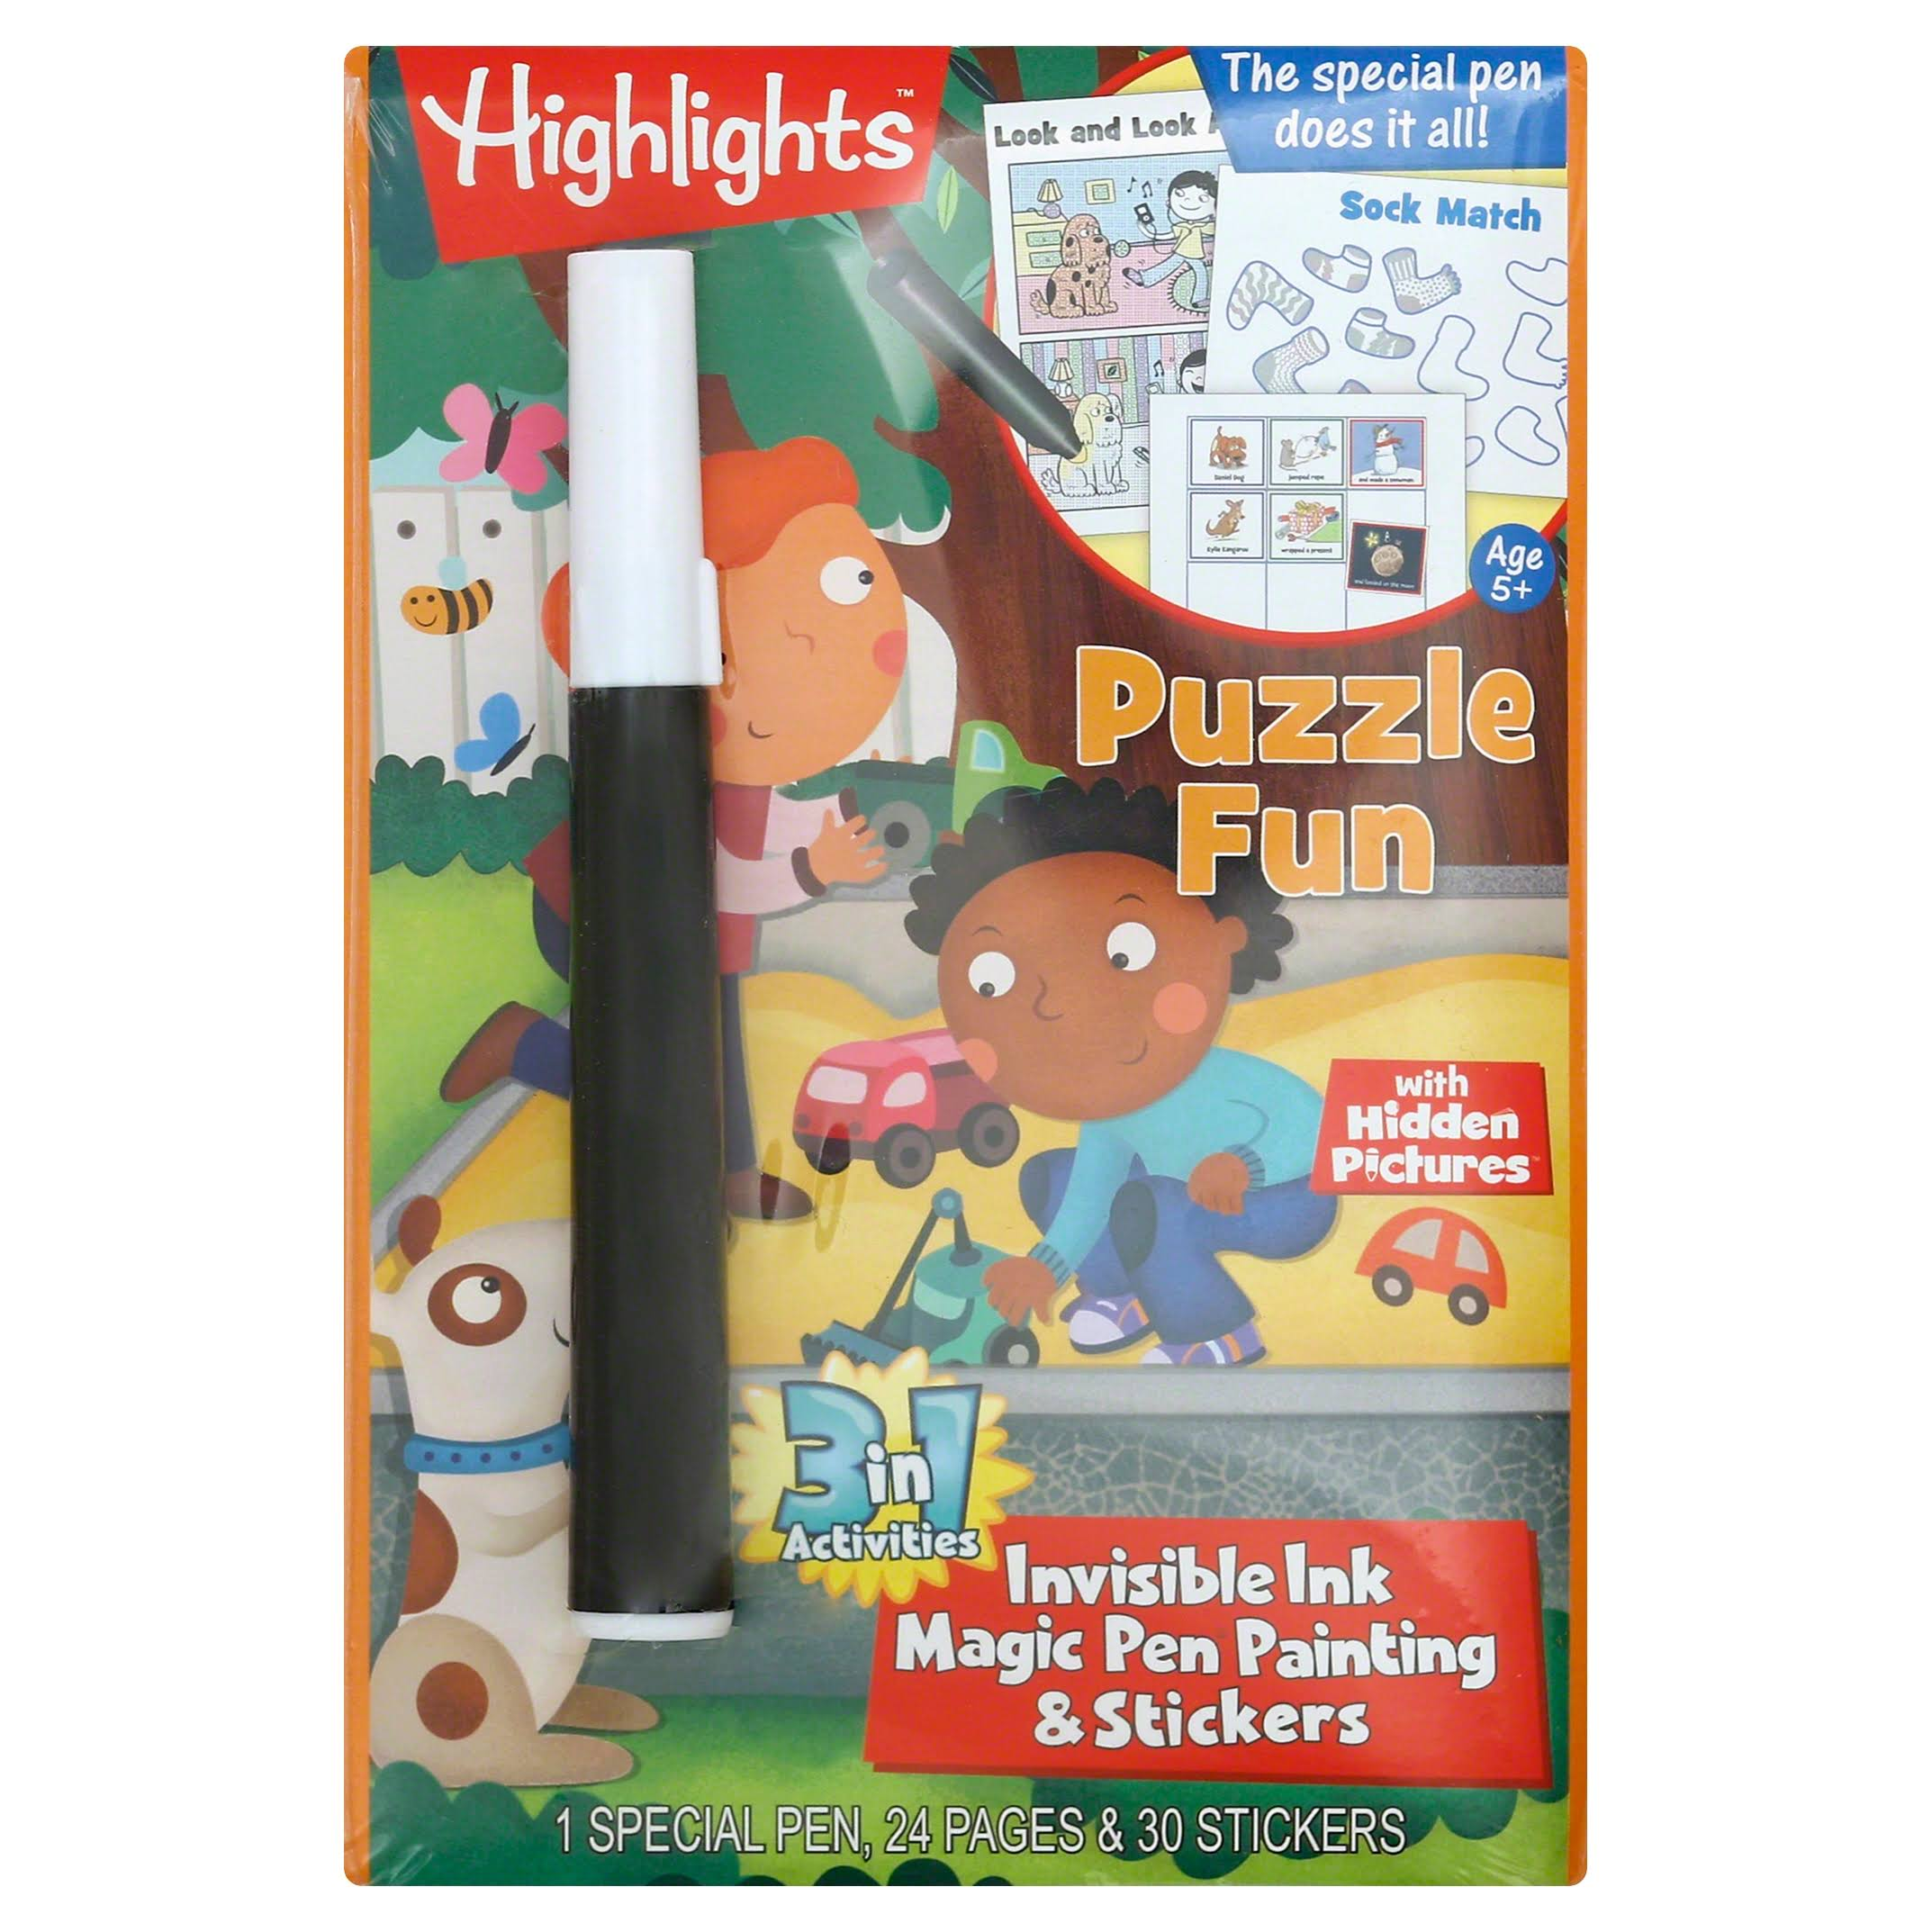 Magic Pen Painting: Highlights 'Puzzle Fun' - Lee Publications